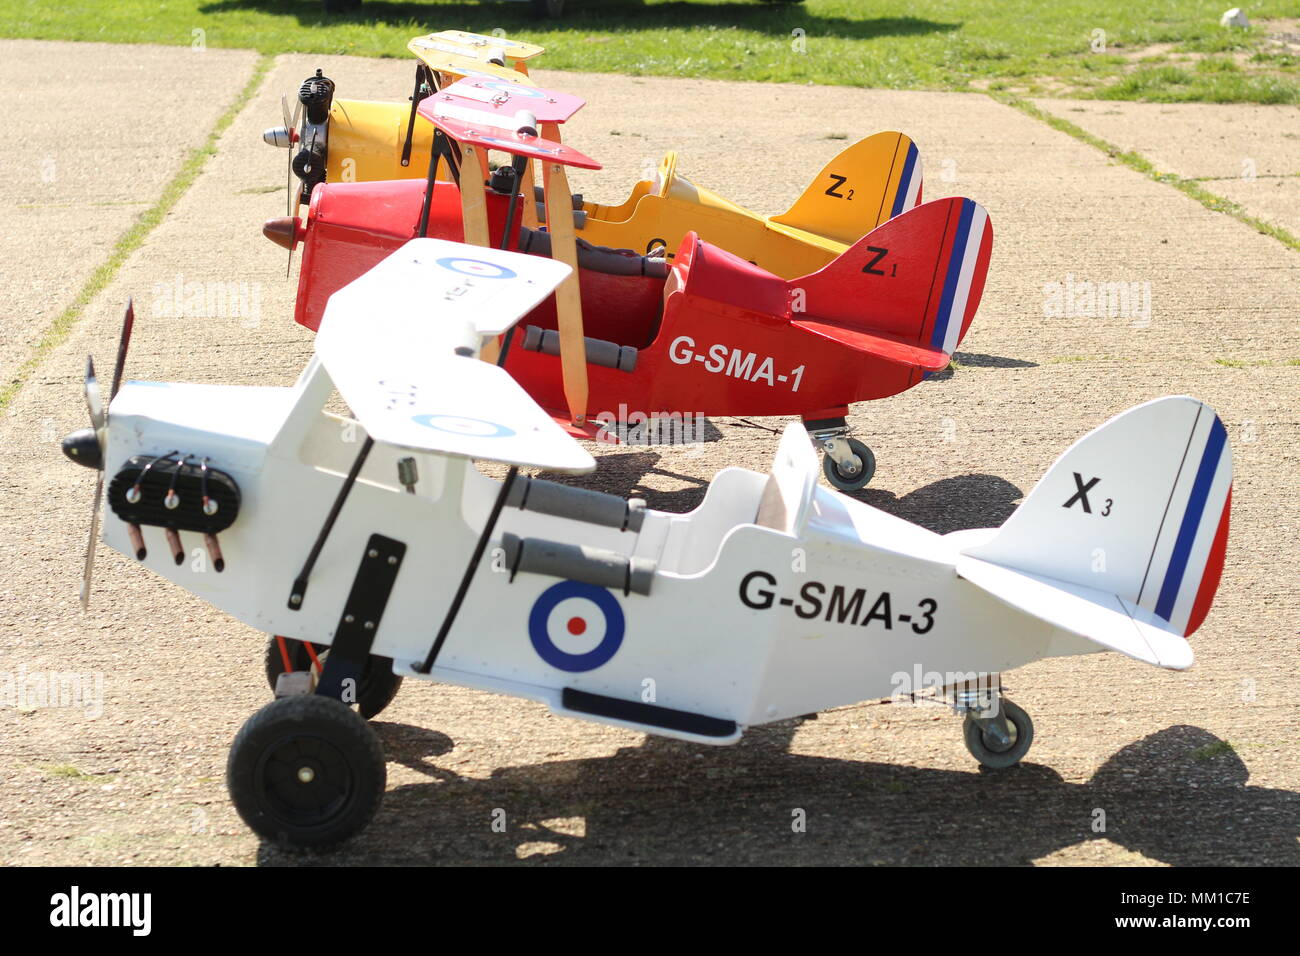 Children's Model Aircraft for recreational purposes, at Stow Maries Great War Aerodrome, Purleigh, Essex, Britain. - Stock Image